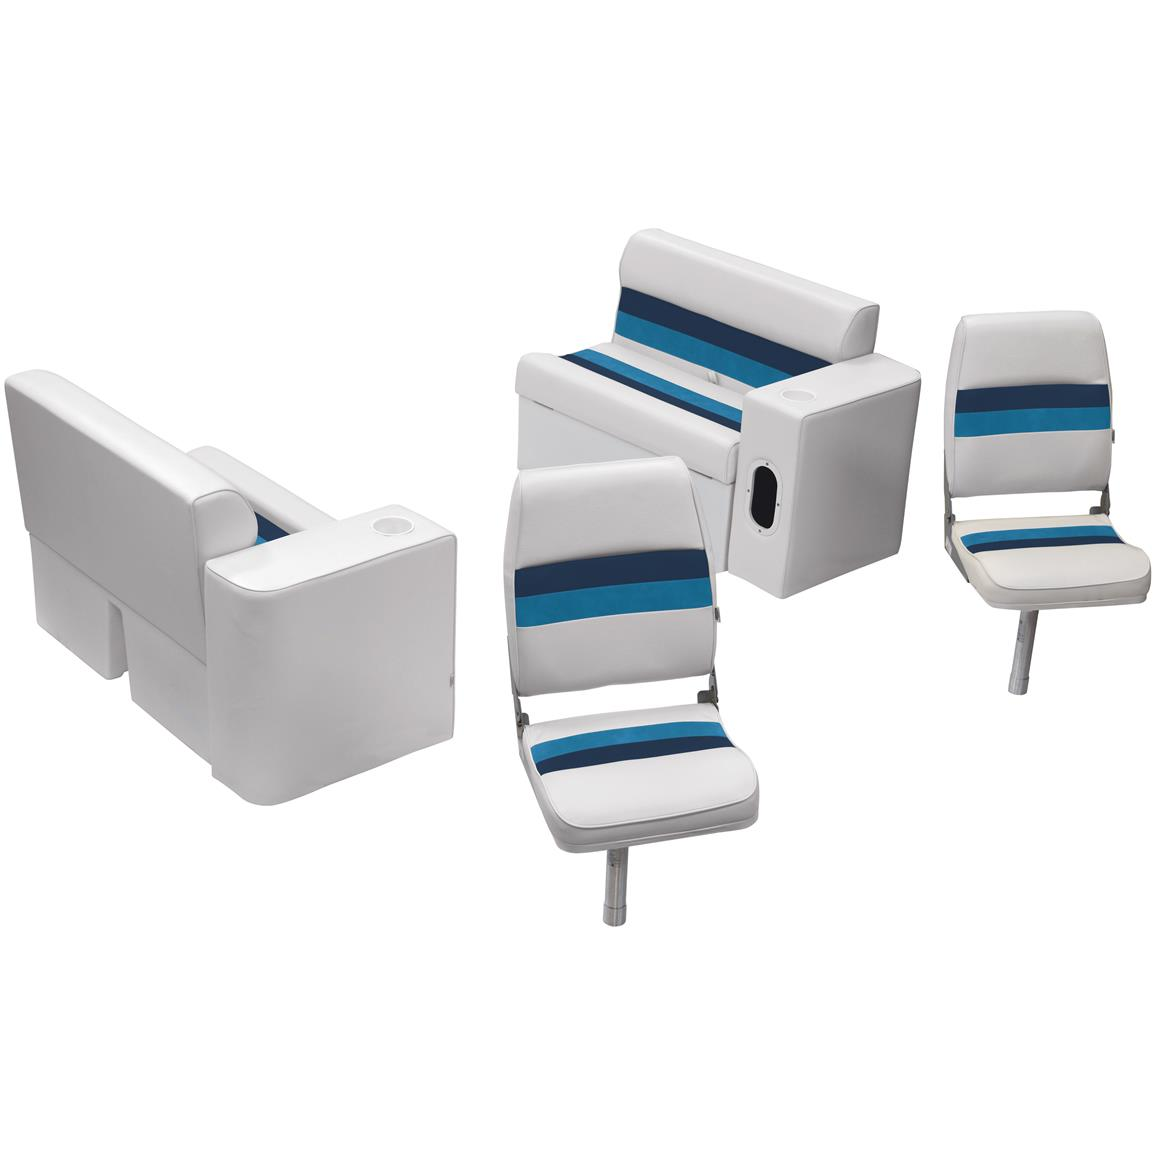 Wise® Deluxe Pontoon 36 inch Bench Fishing Seating Group, Color A: White / Navy / Blue